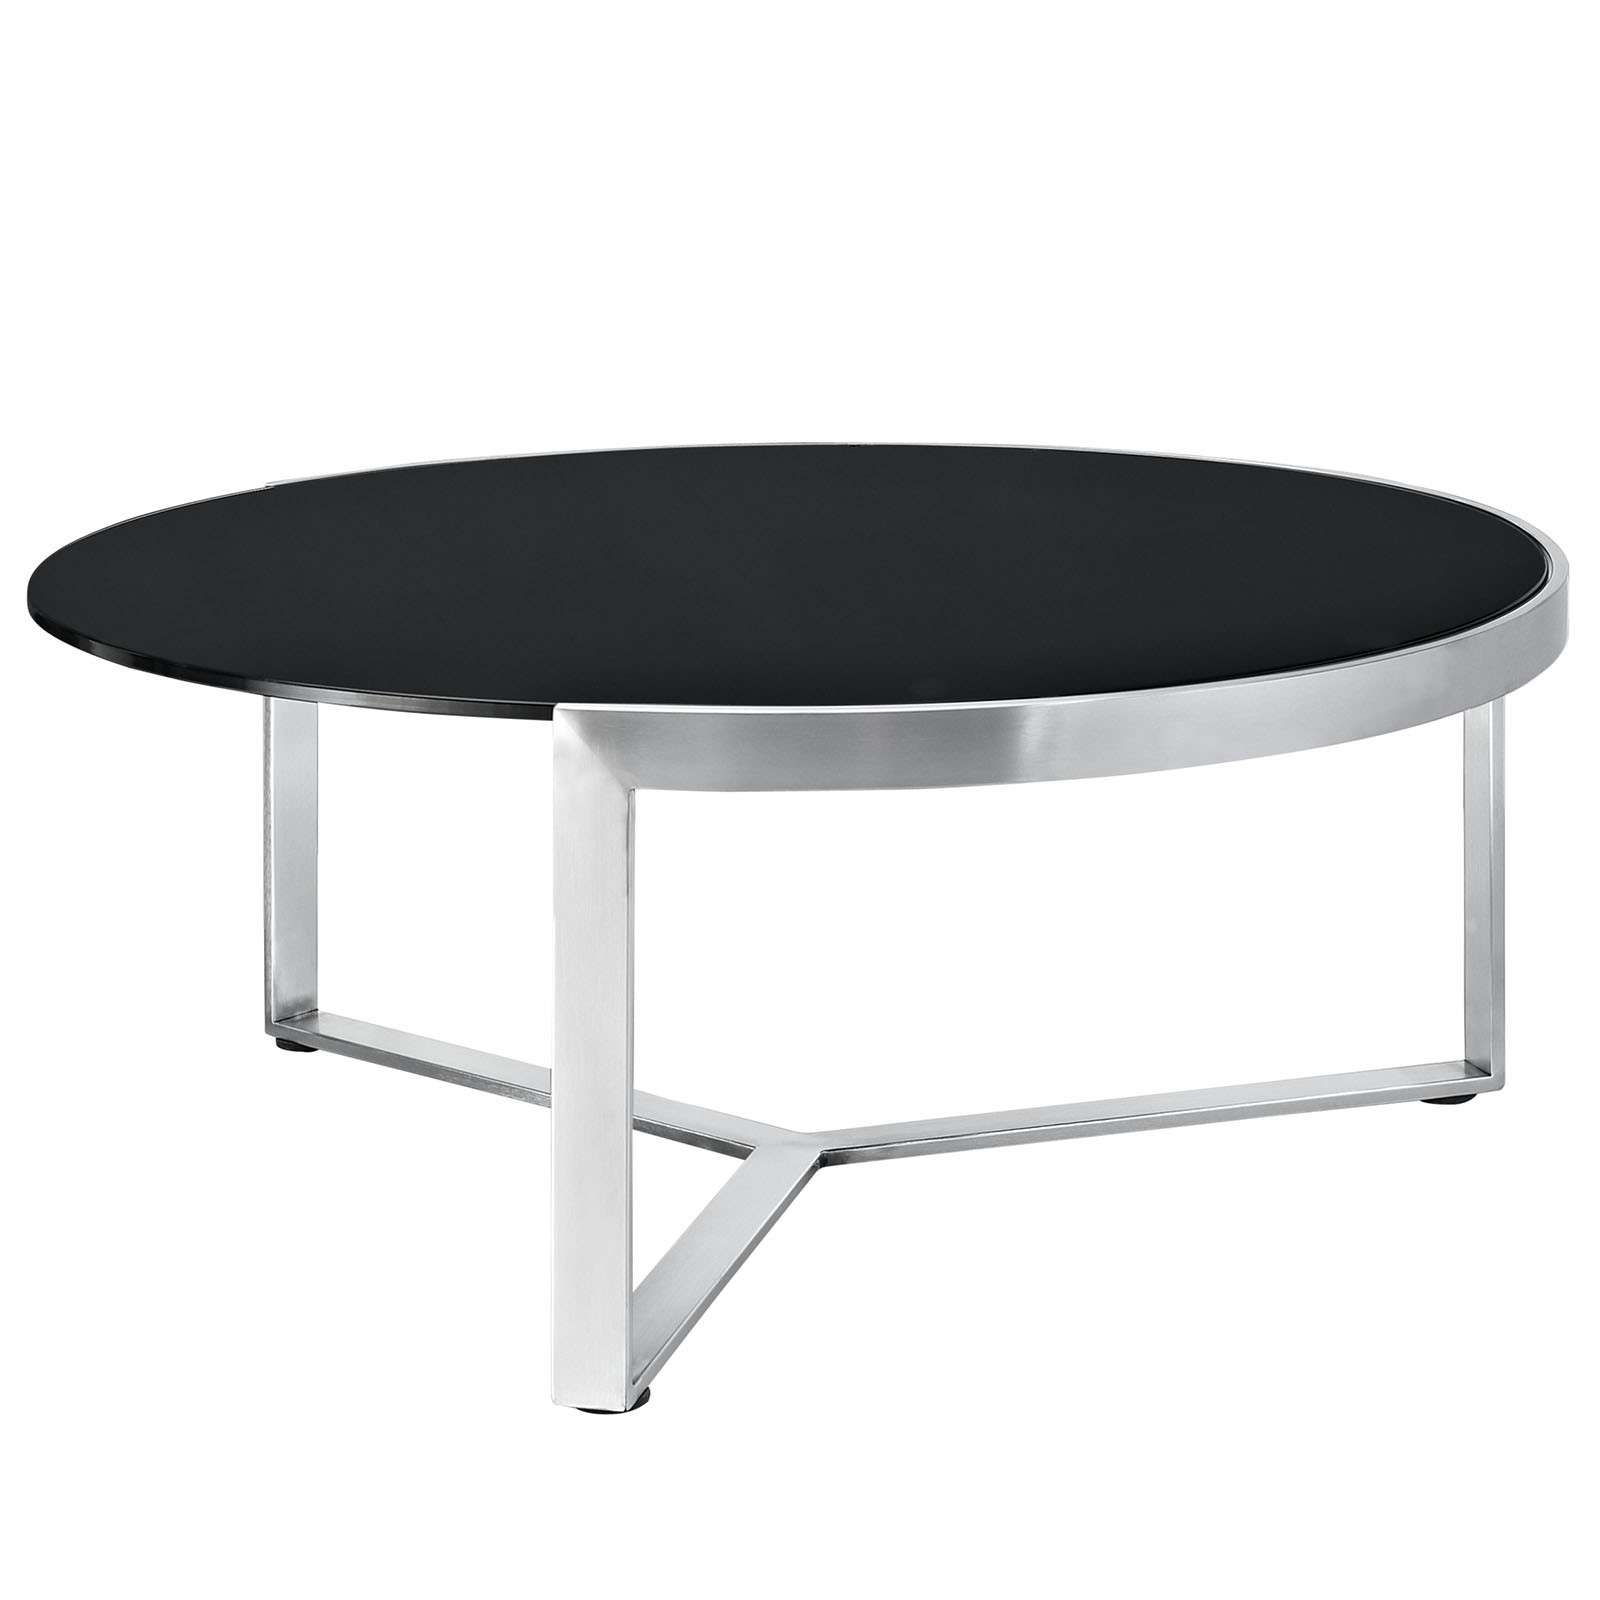 Stylish Modern Round Coffee Table With Slim Wooden Top Painted Inside Popular Round Steel Coffee Tables (View 14 of 20)